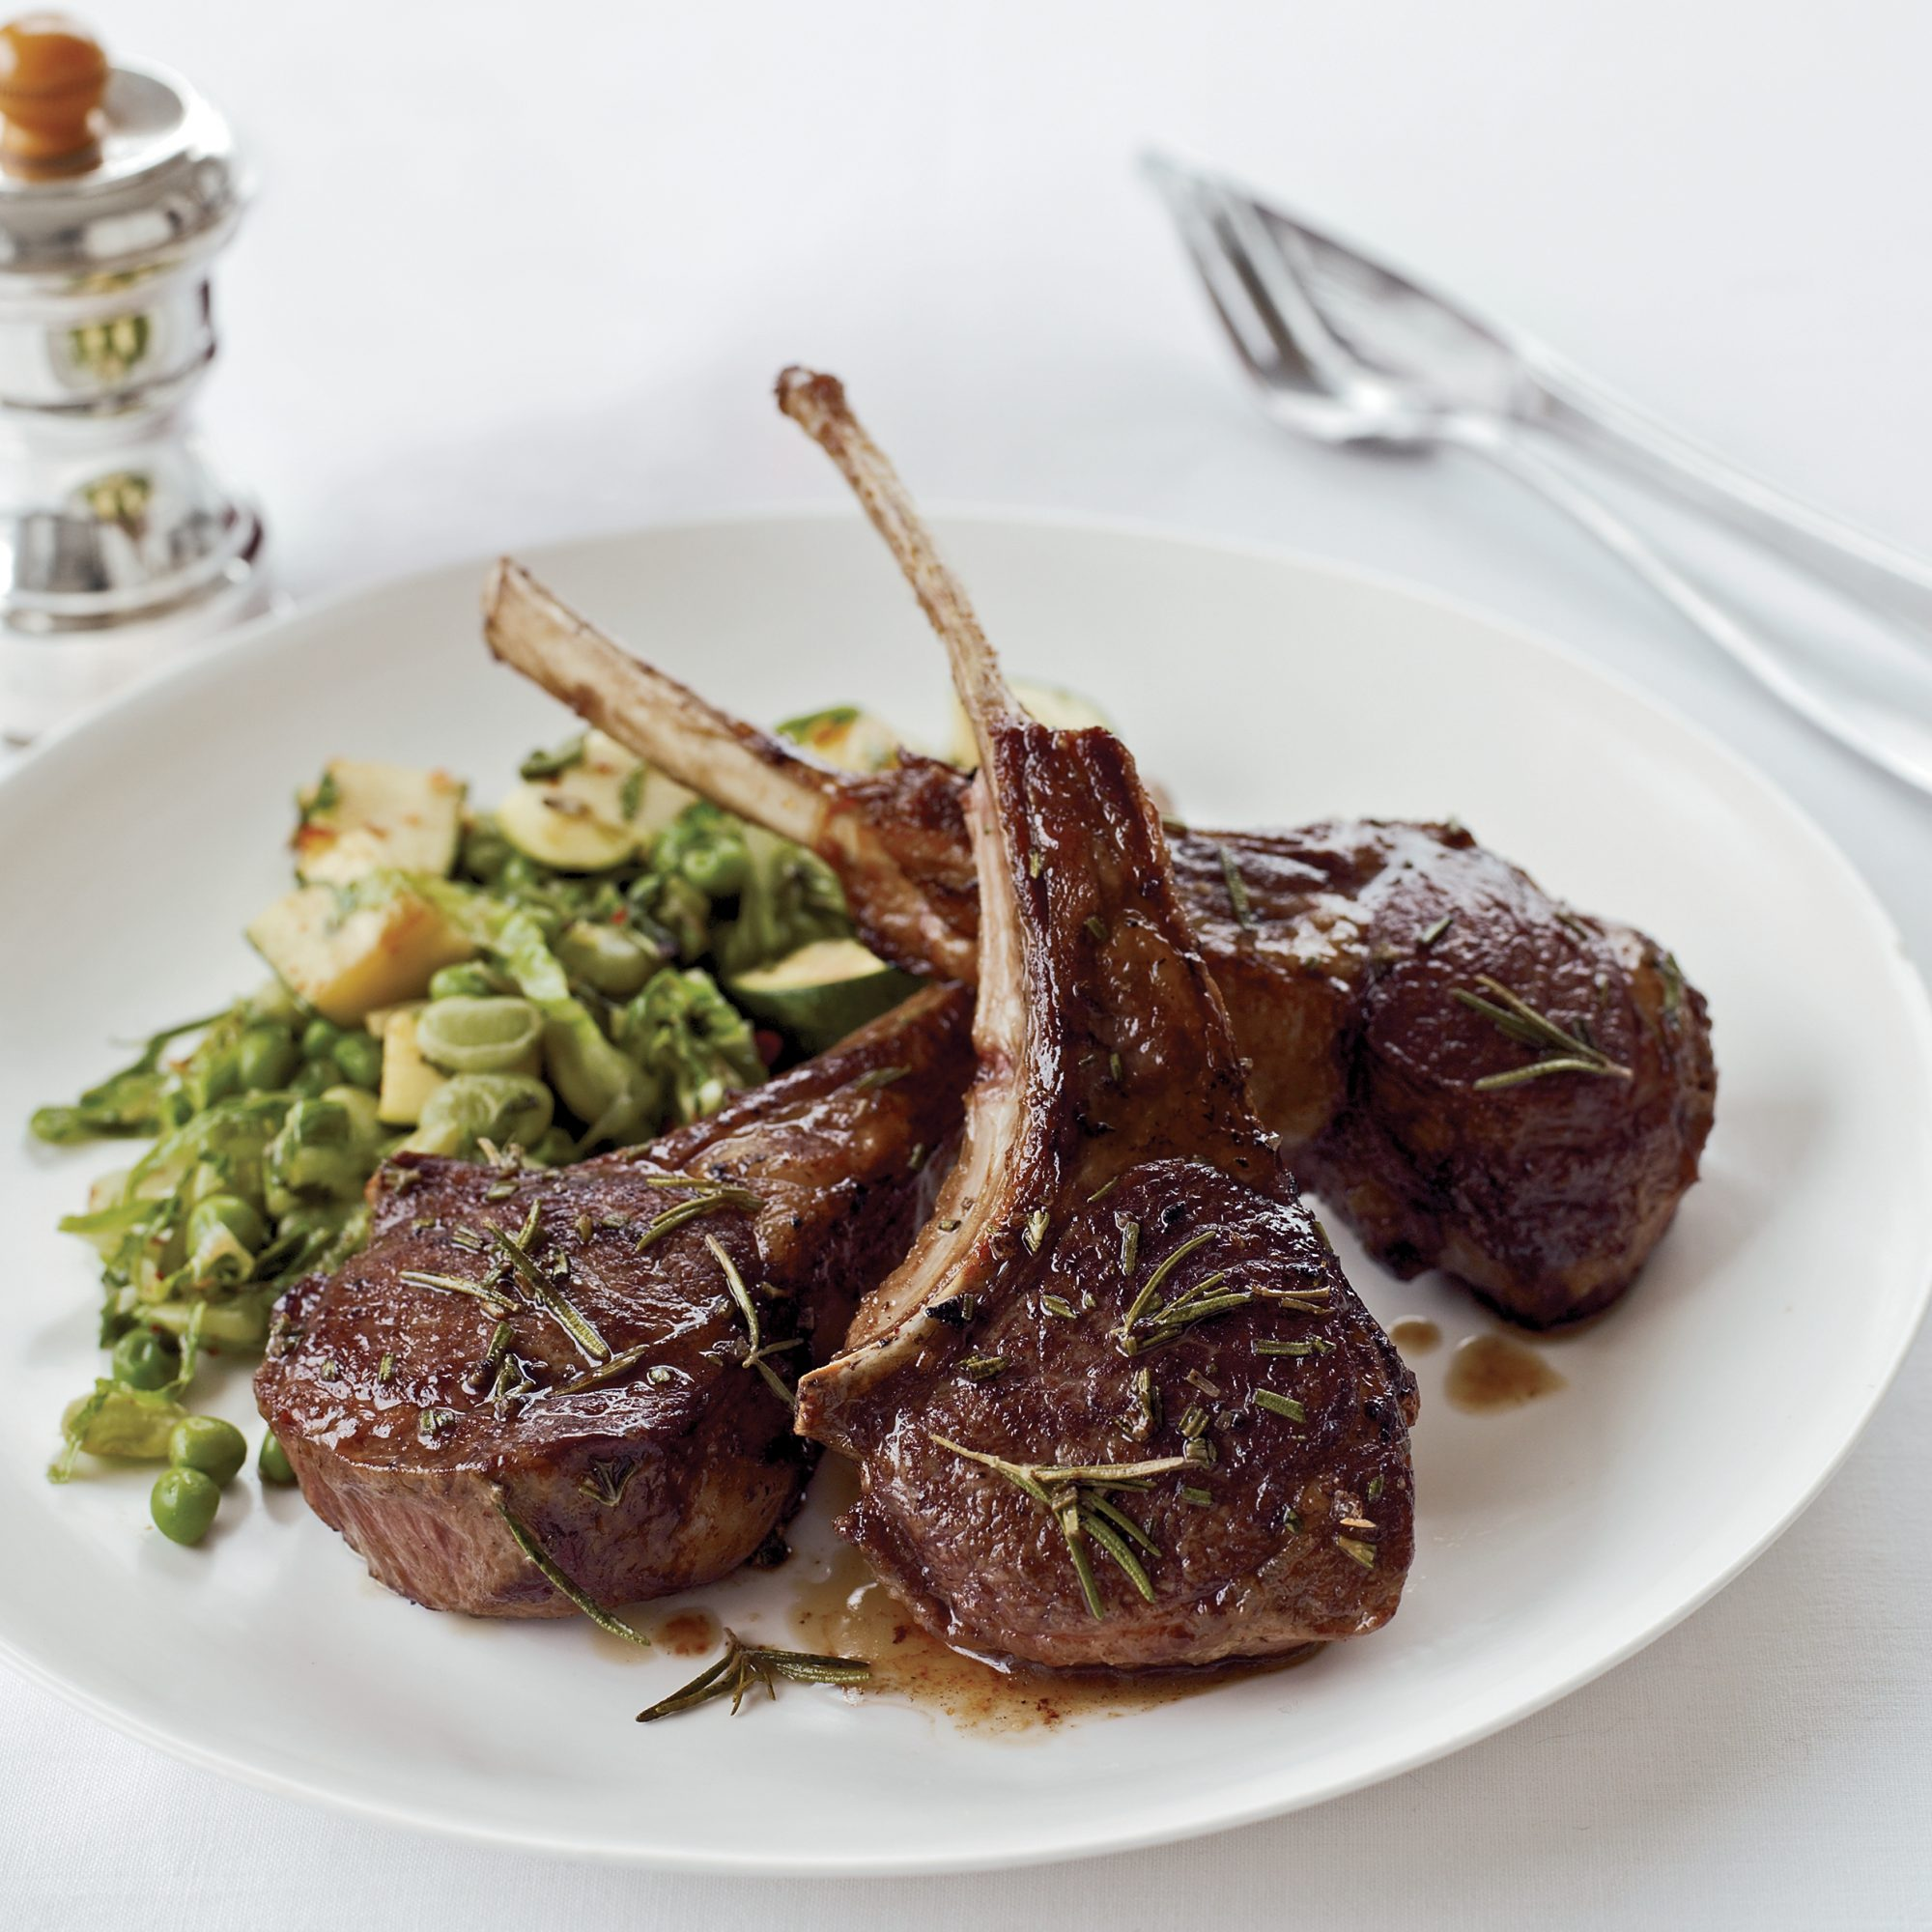 Rosemary Lamb Chops Recipe - Lidia Bastianich